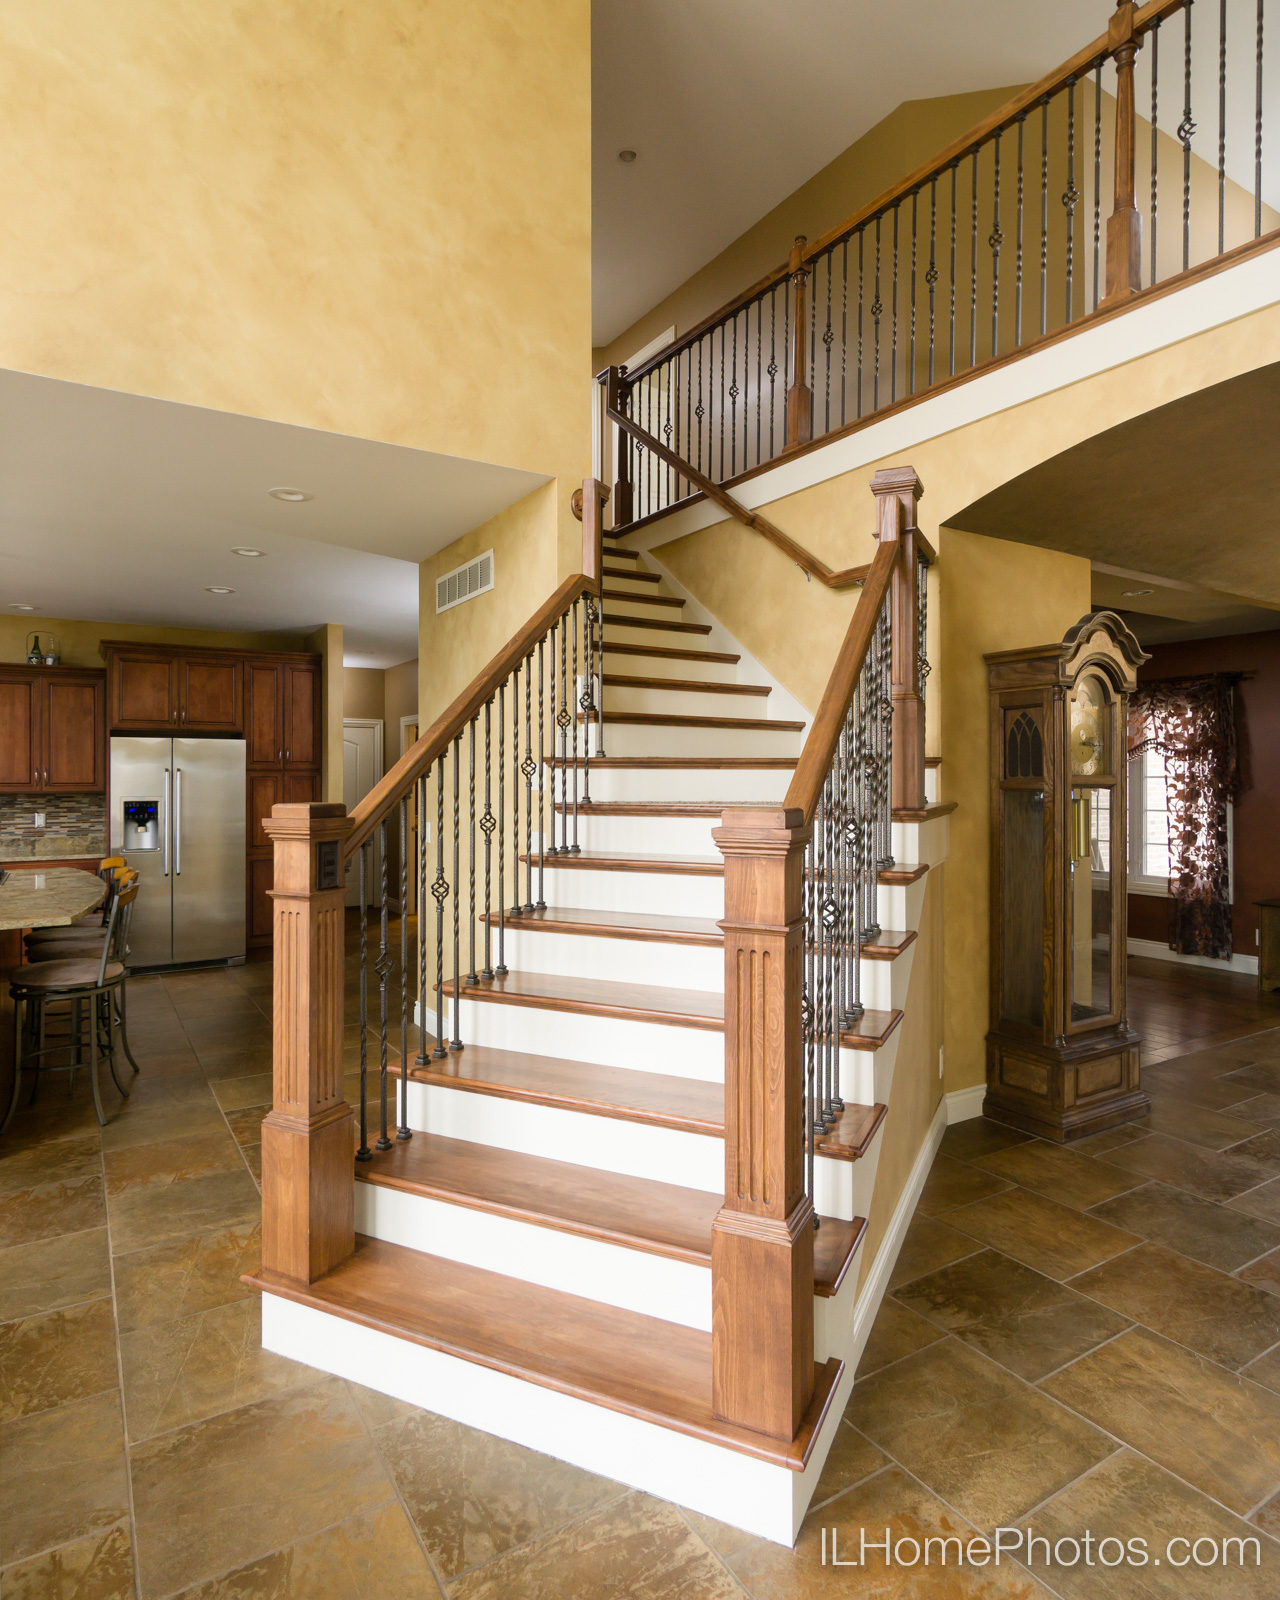 Interior stairway detail photograph for real estate :: Illinois Home Photography by Michael Gowin, Lincoln, IL